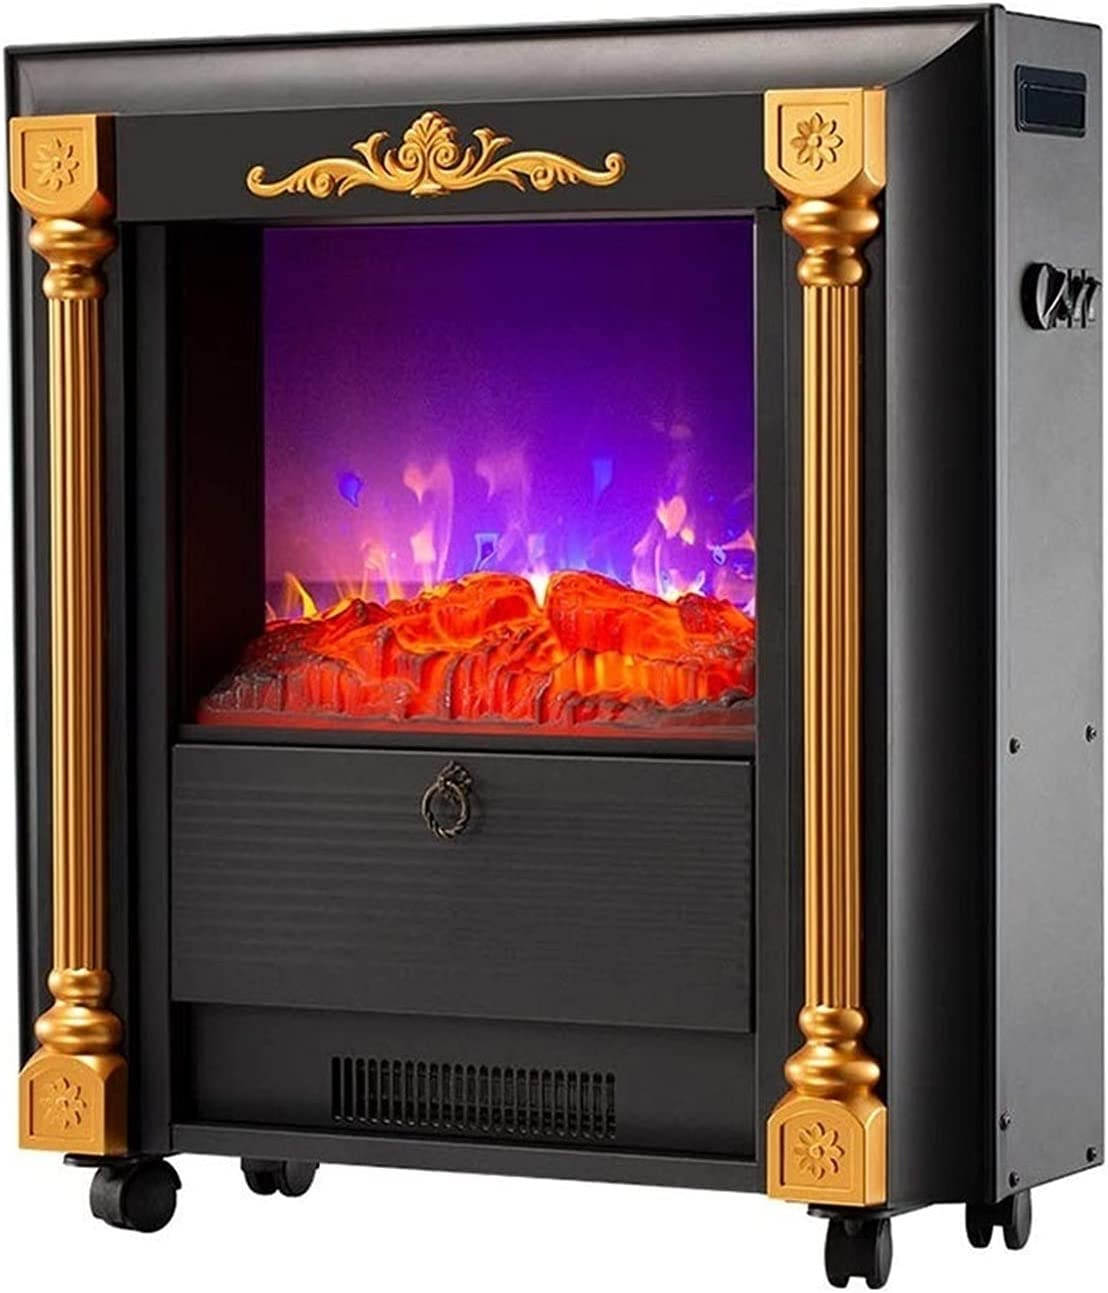 Fireplaces RENJUN- 2000W High Power Realistic Electric 3D Max Sale special price 47% OFF Flame